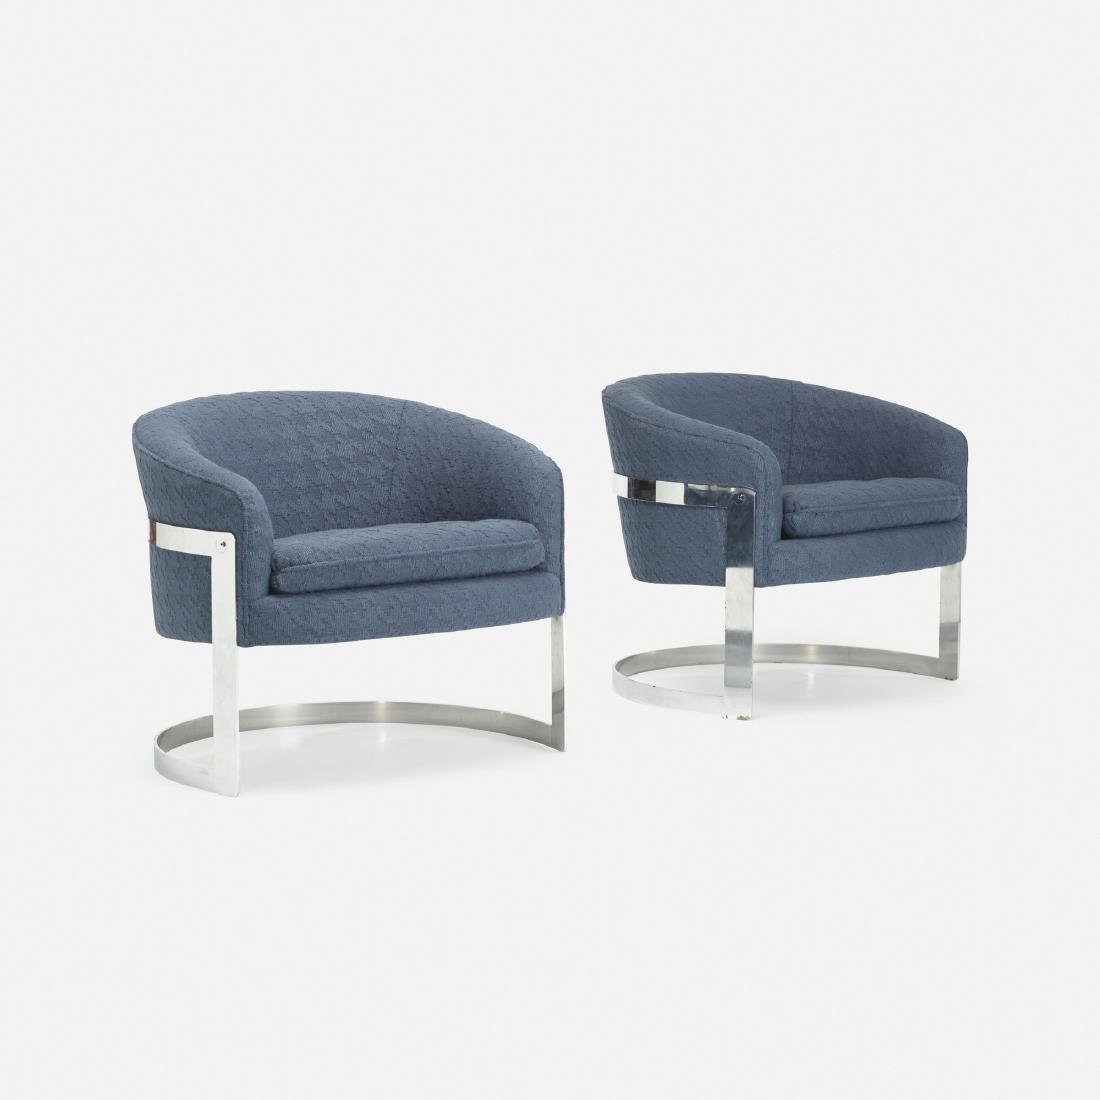 Milo Baughman, lounge chairs, pair